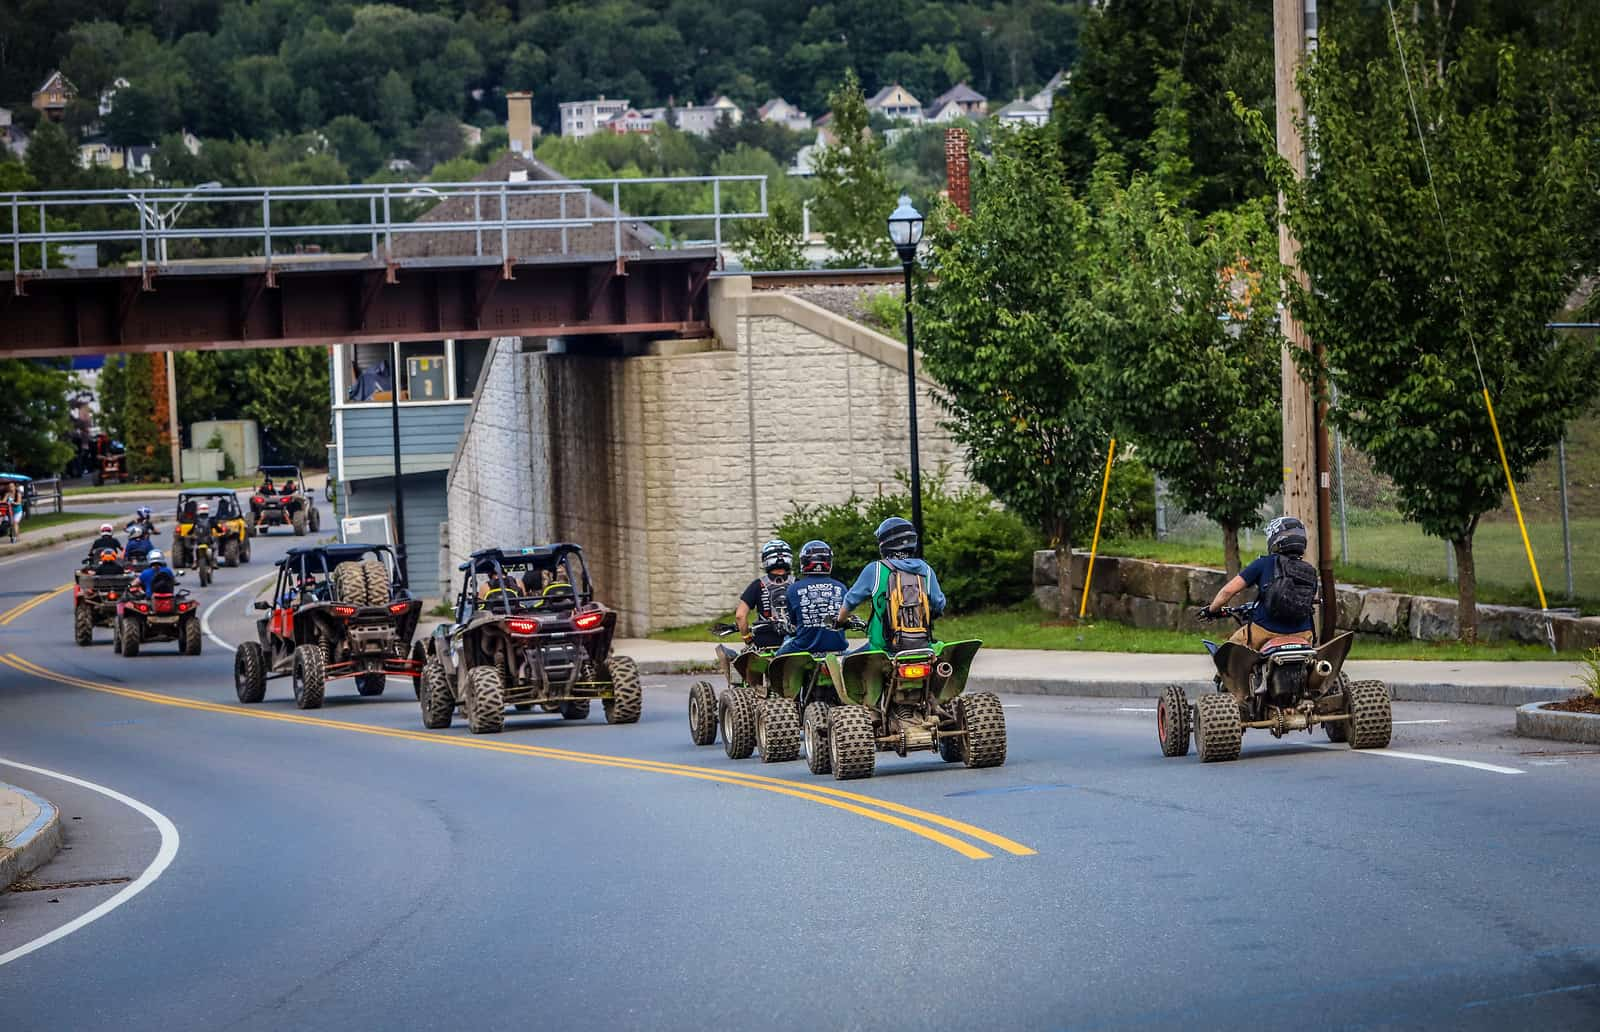 ATVs driving on the street in Berlin, NH at the Jericho ATV Festival